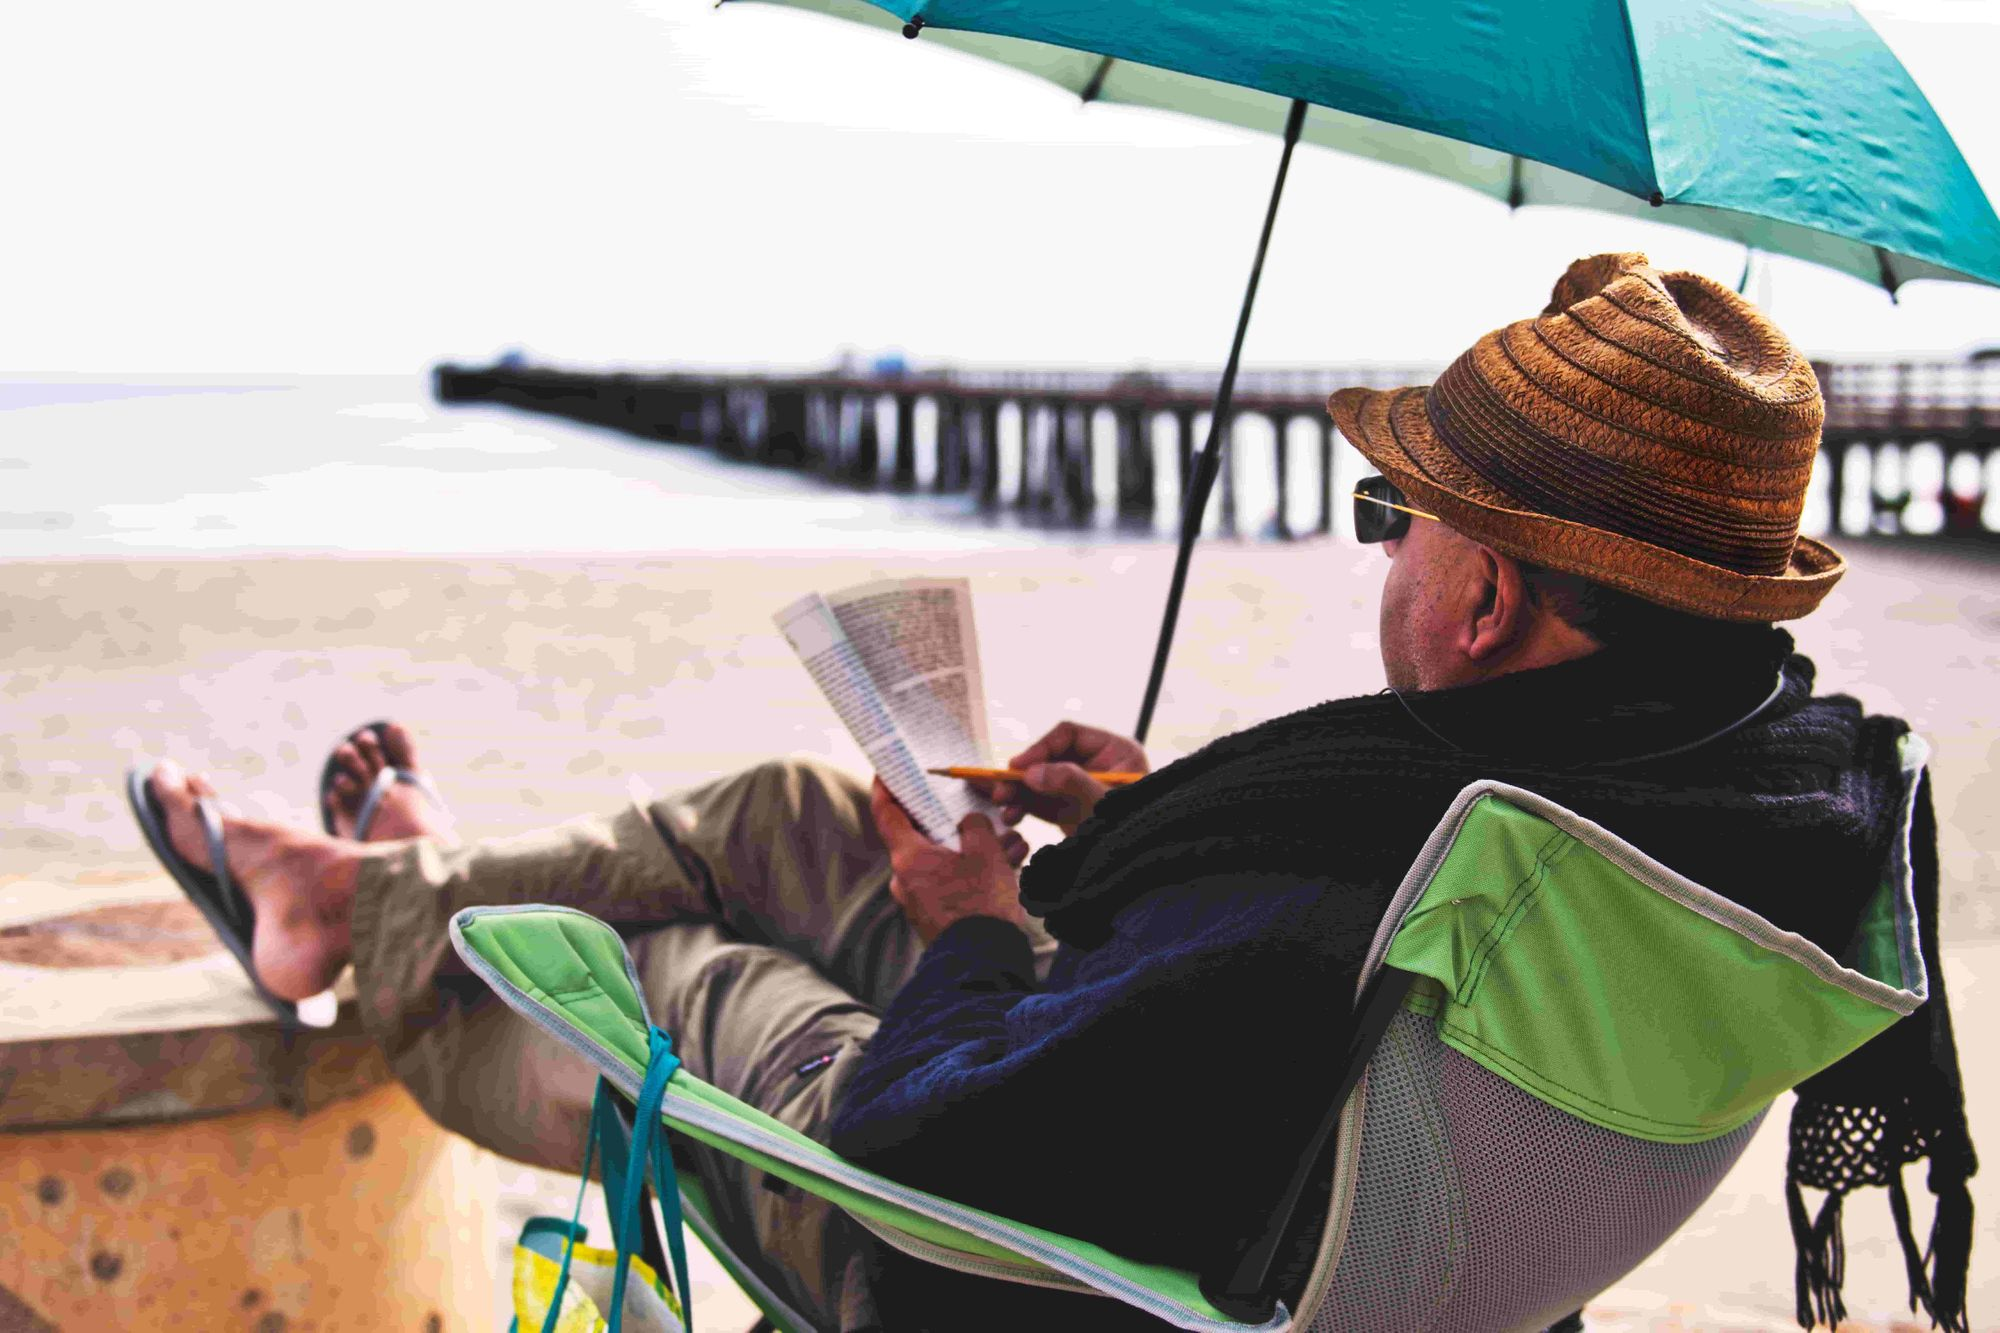 An older man sits on the beach, reading and making notes